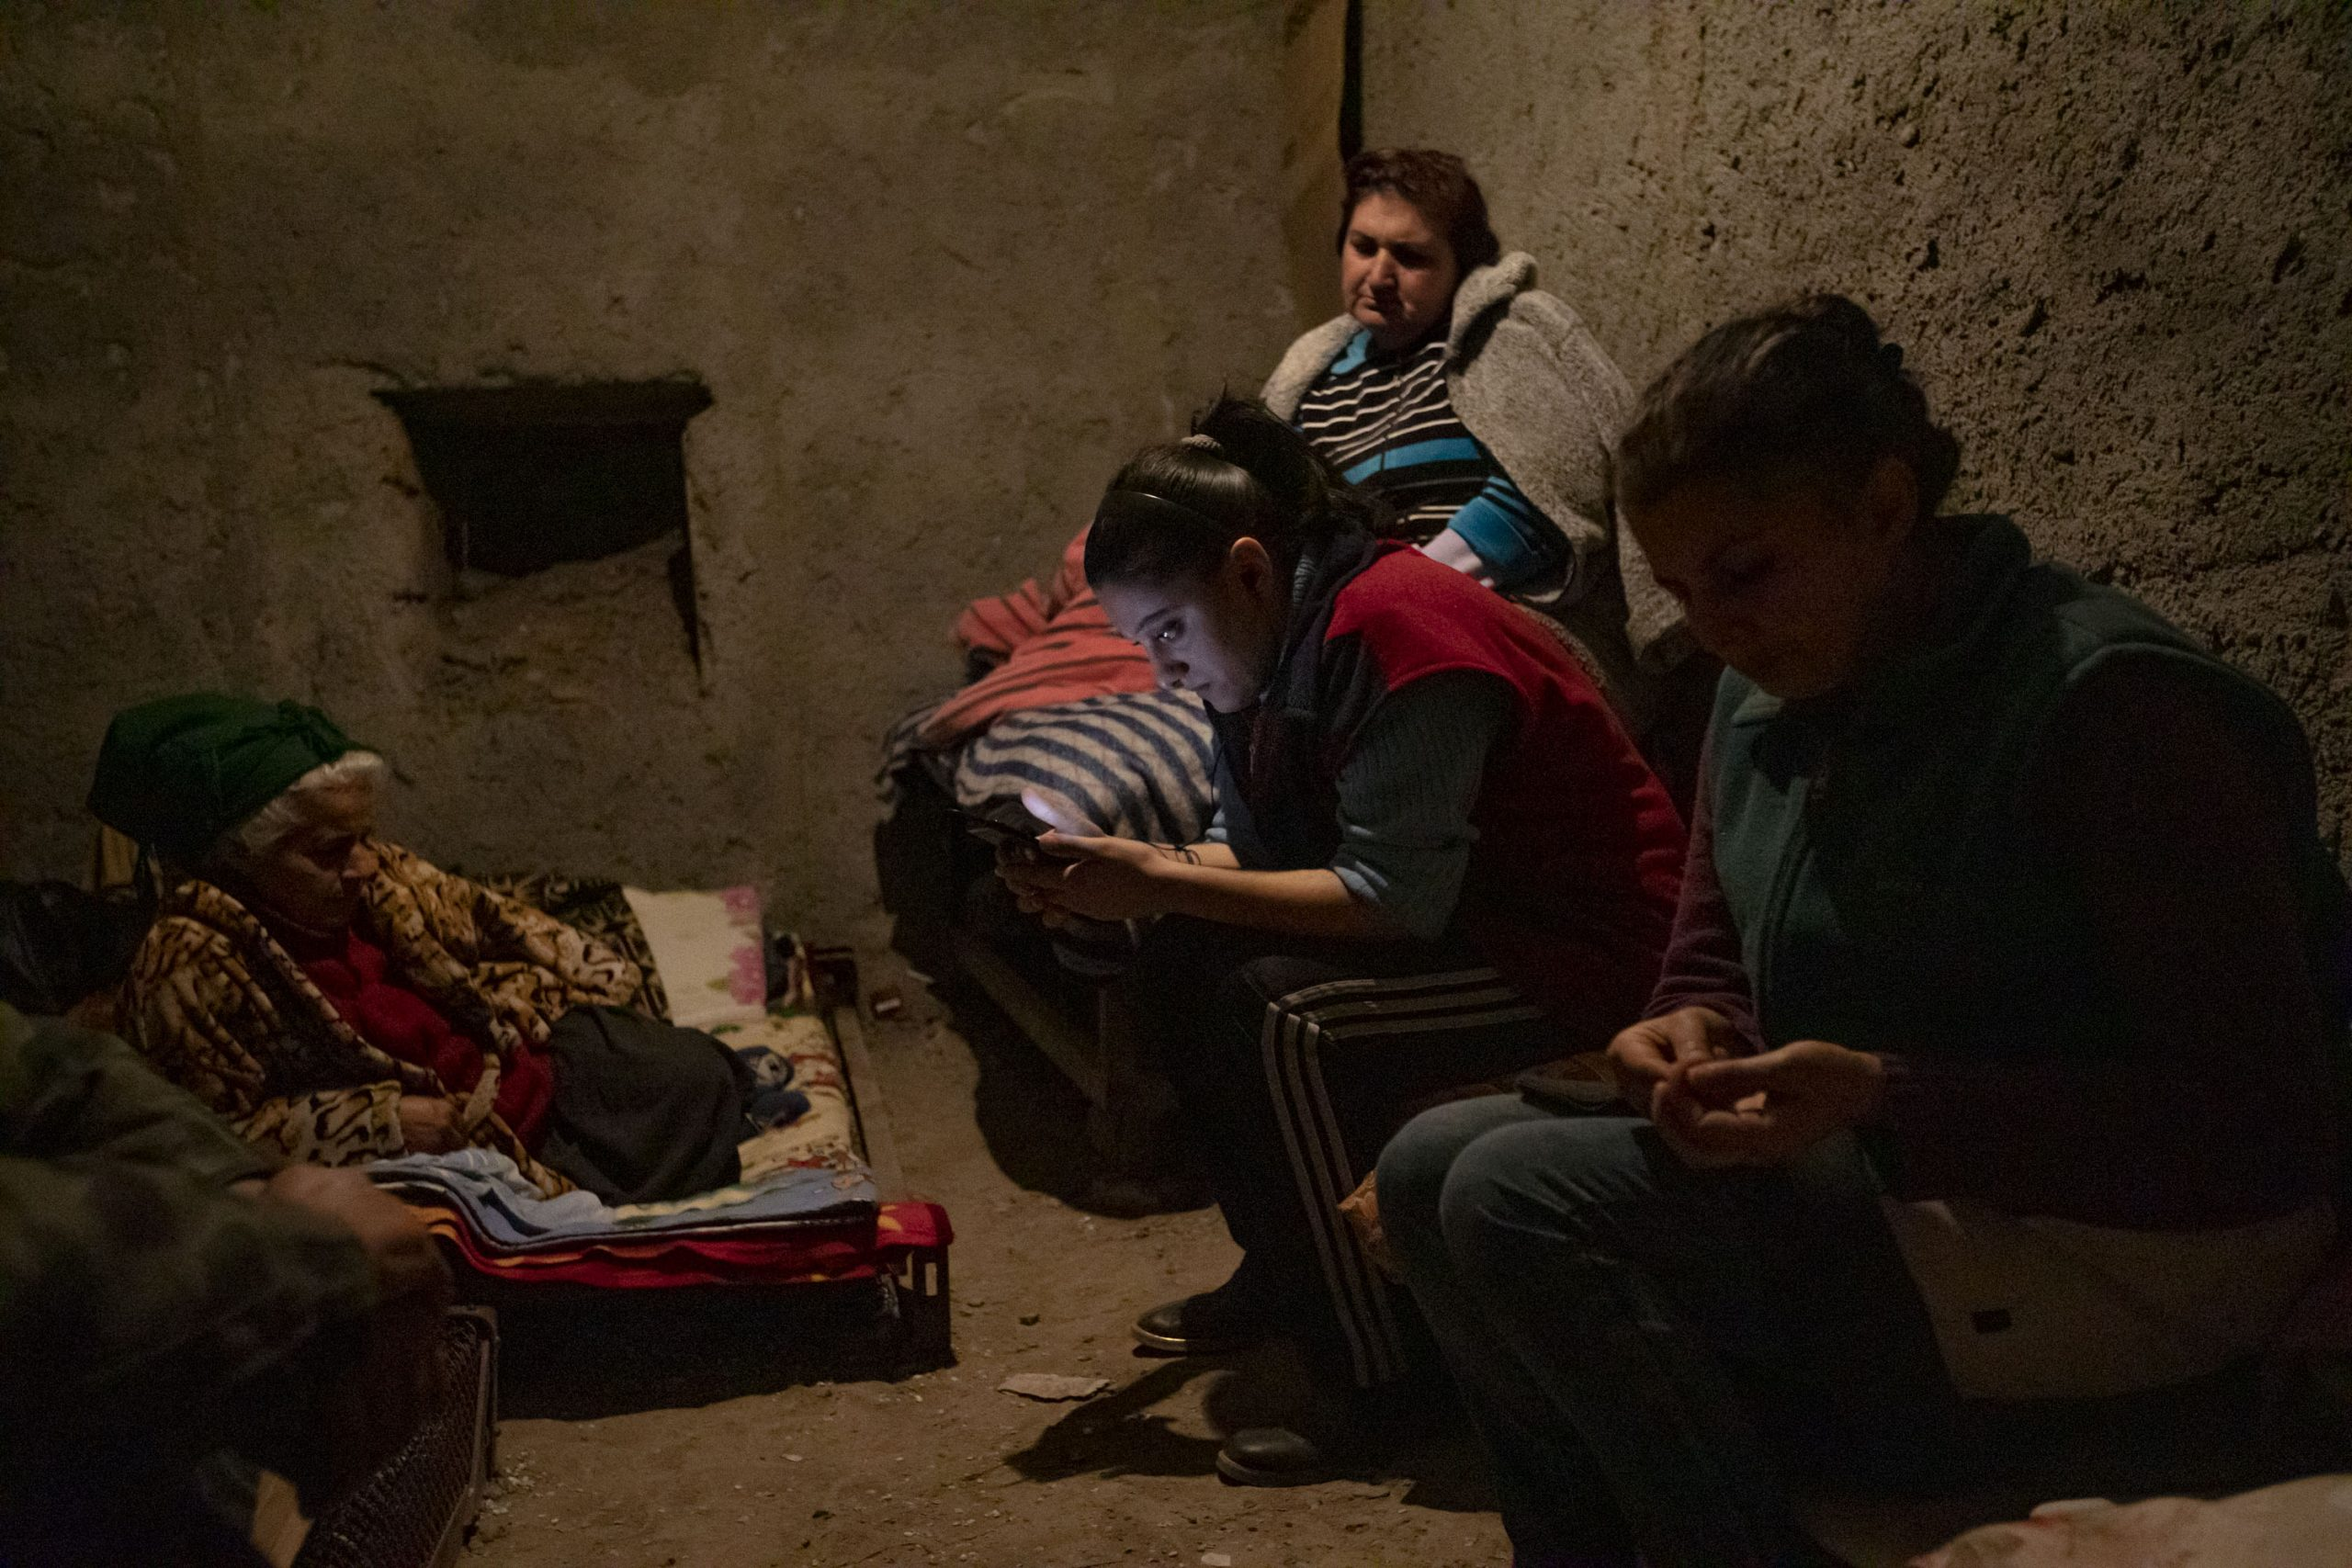 Residents of a five floor building hide in a shelter under their building, in Shushi, Nagorno-Karabakh, on October 16, 2020. The town, which Armenians call Shushi and Azerbaijanis call Shusha, came under Azerbaijan's control by the end of the Nagorno-Karabakh war.